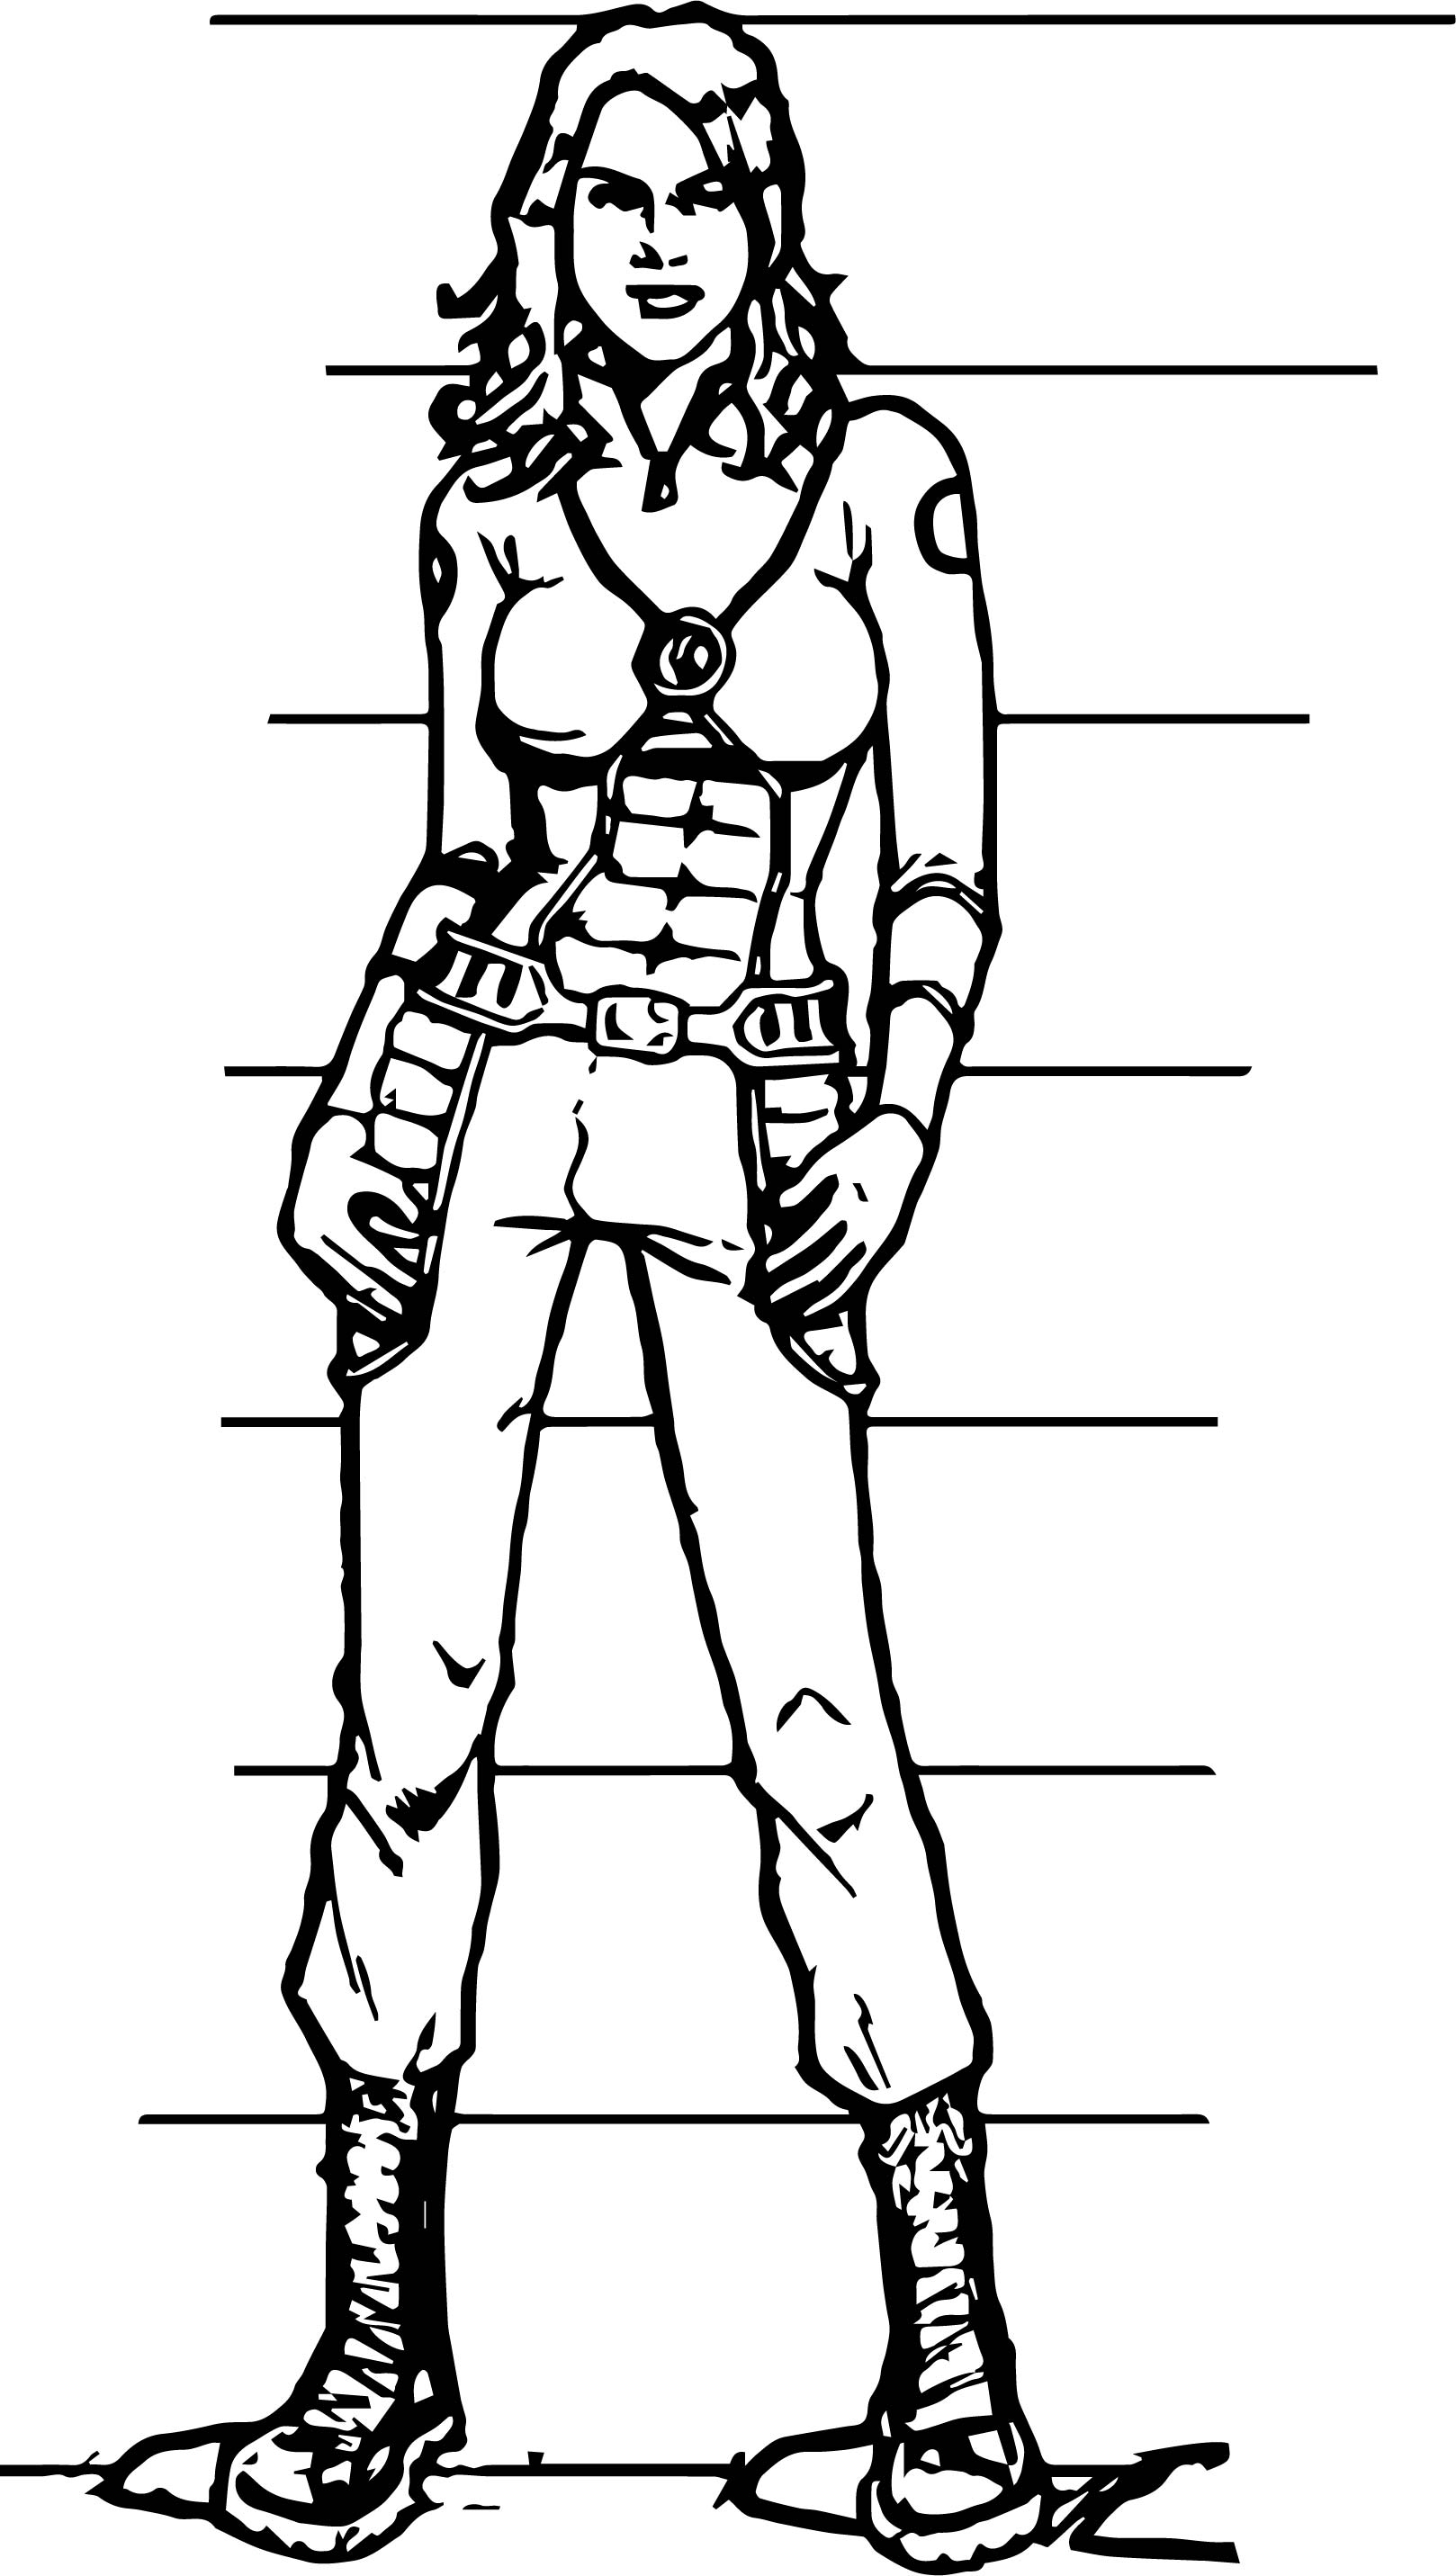 Olivia Munn Character Design Coloring Page